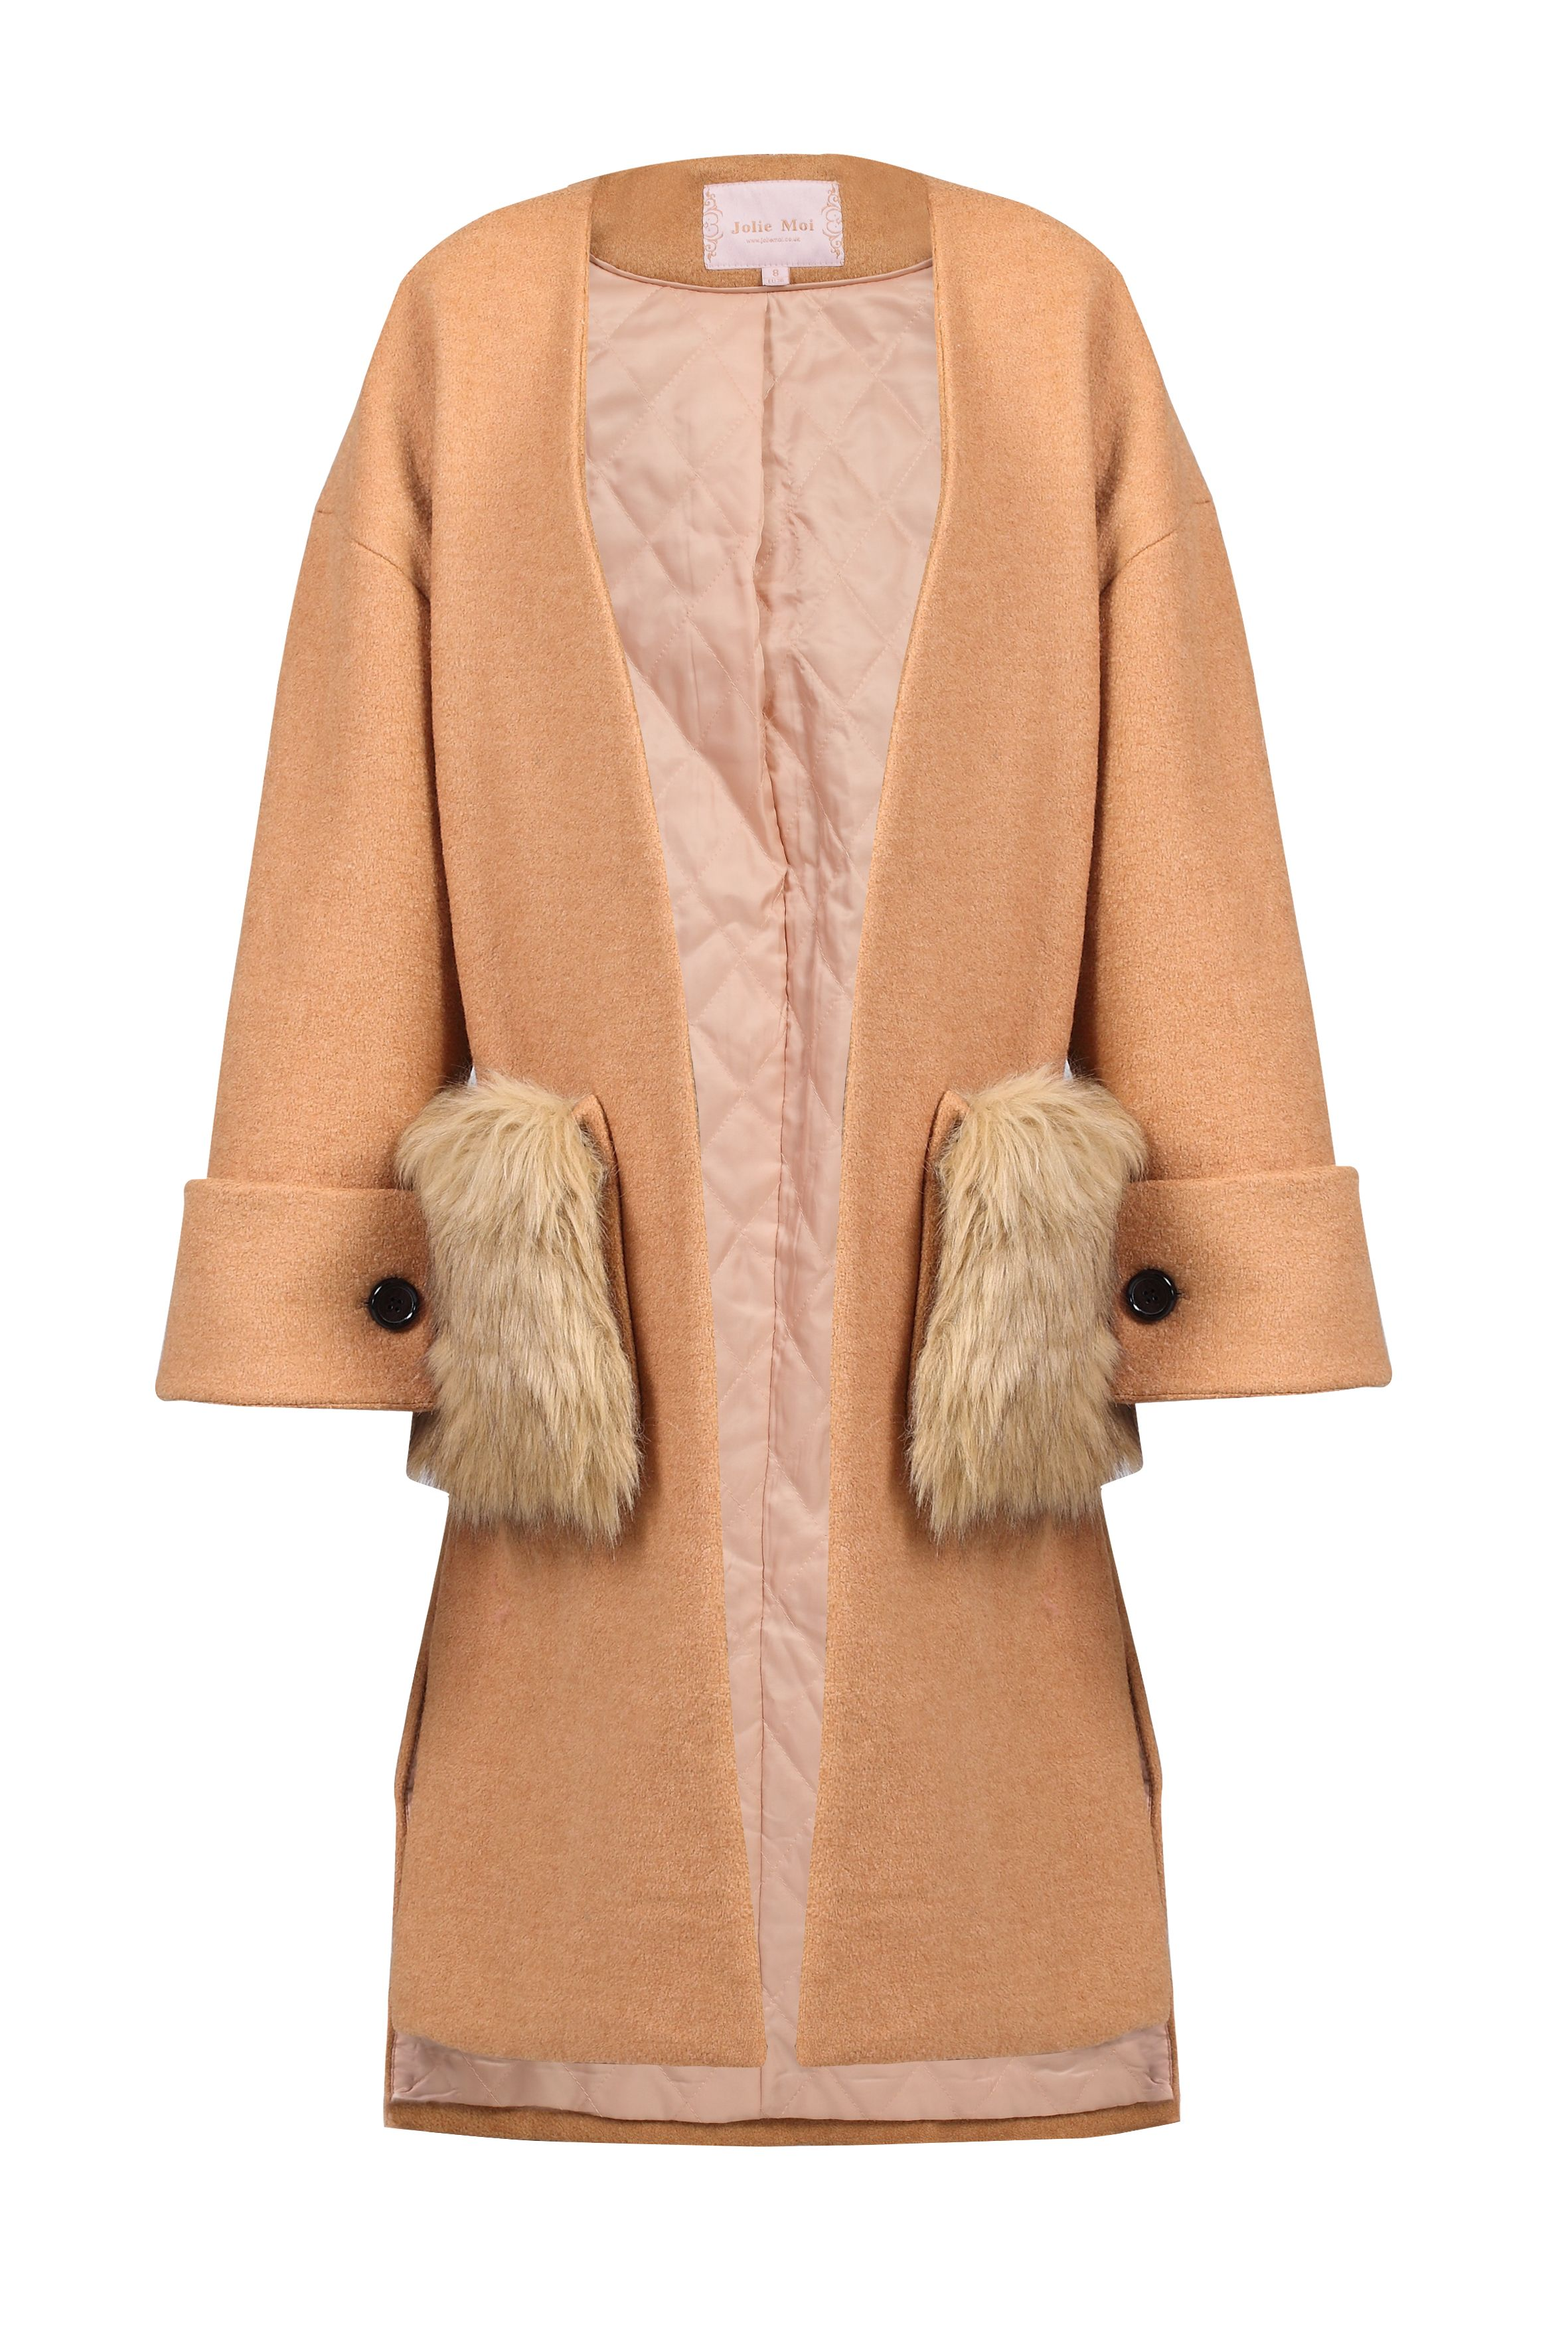 Barbour Endo Baffle Long Fur Hooded Coat Compare Bluewater Jolie Clothing Beckia Midi Dres